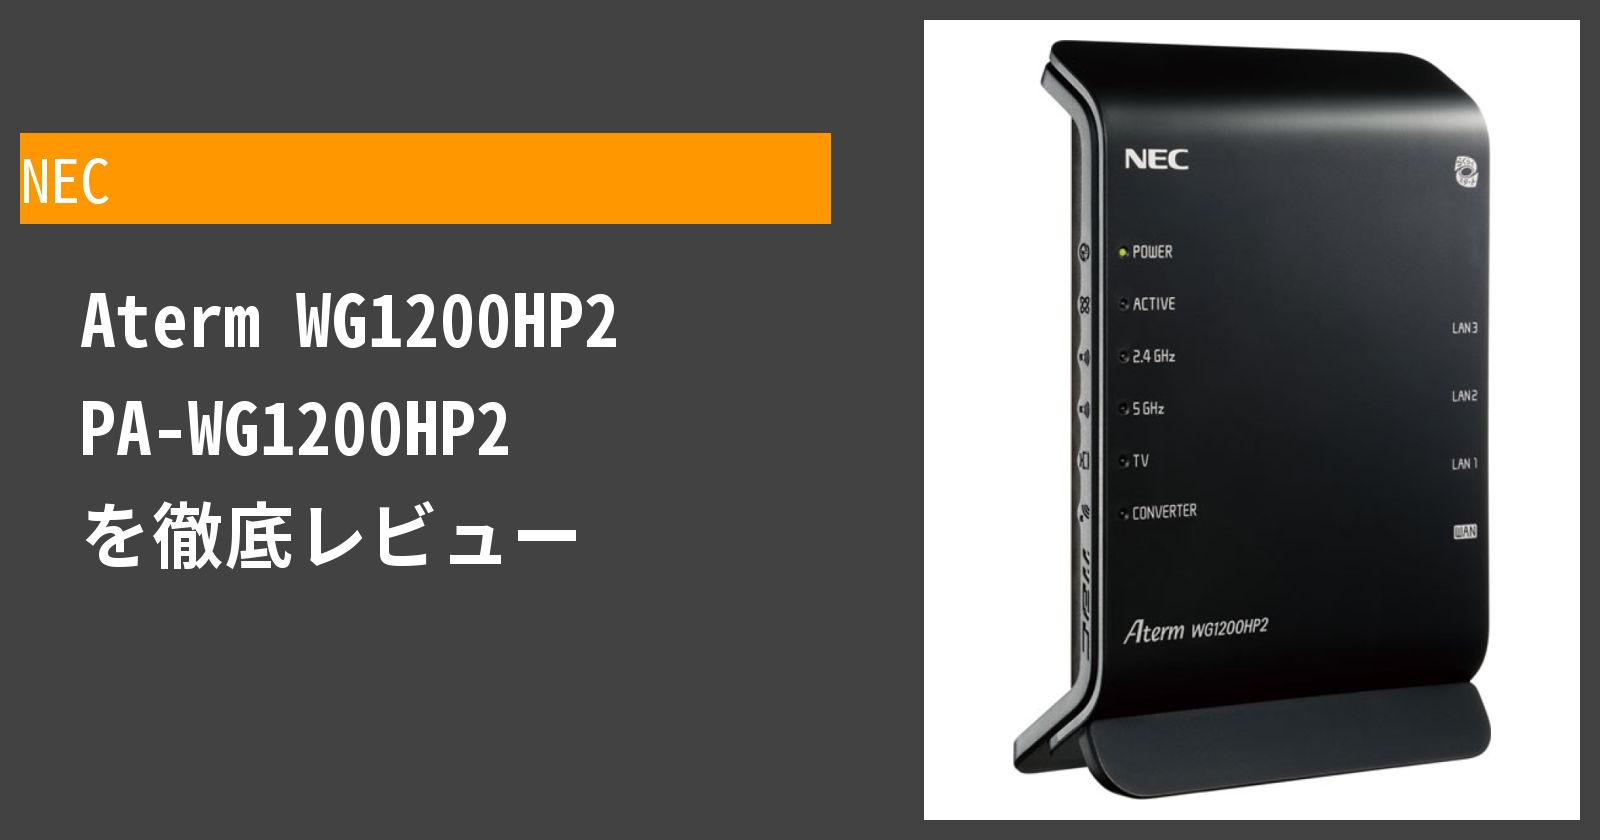 Aterm WG1200HP2 PA-WG1200HP2を徹底評価